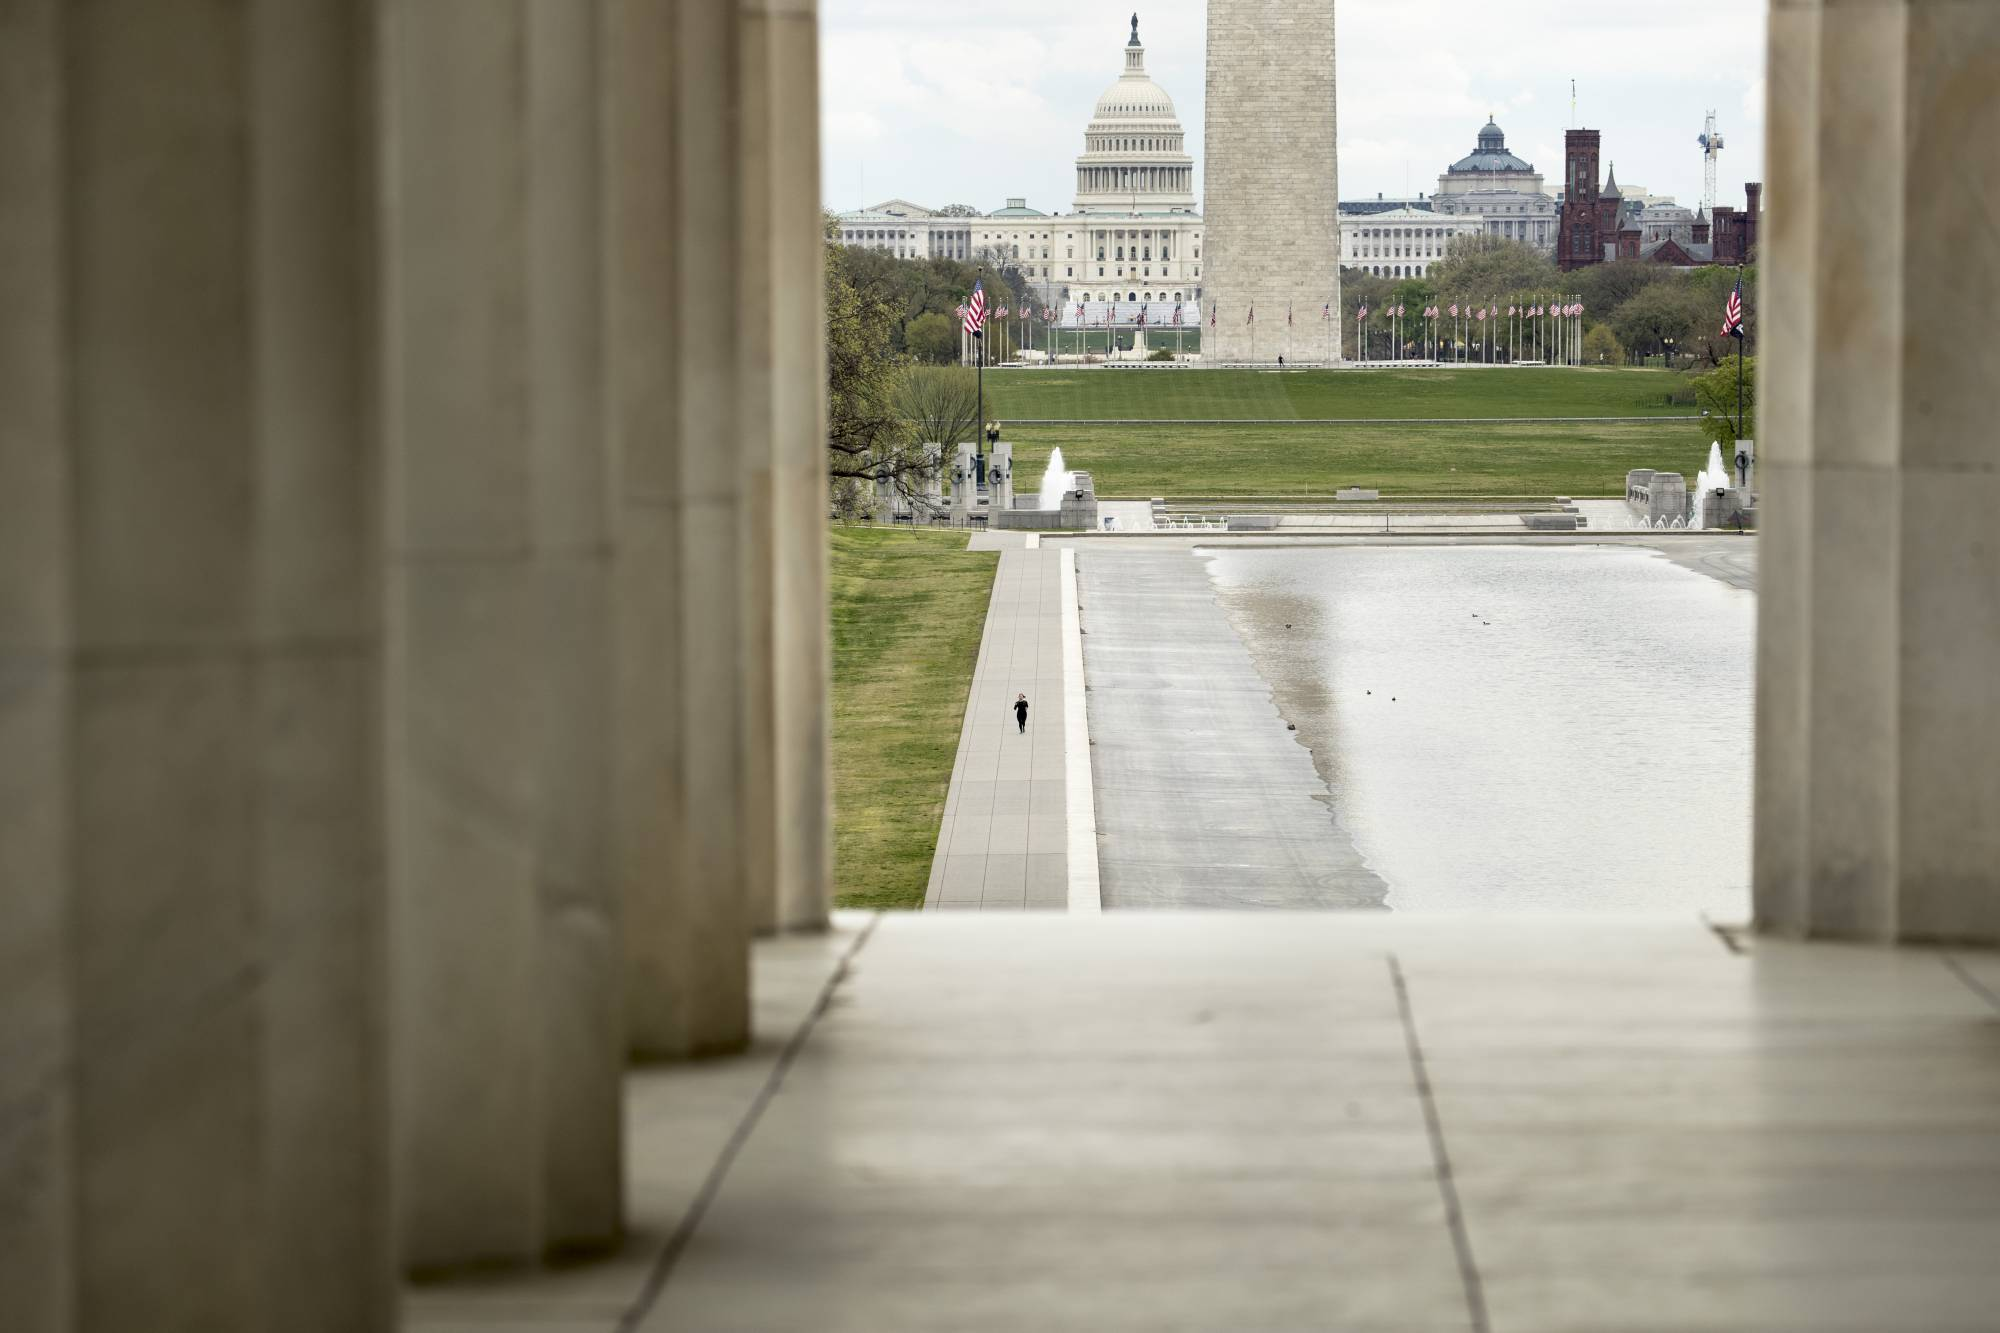 FILE - In this March 31, 2020, file photo the Dome of the U.S. Capitol and the Washington Monument are visible as a lone woman runs along the Reflecting Pool on the National Mall in Washington. The nation's capital, like most of the nation itself, is largely shuttered. (AP Photo/Andrew Harnik, File)